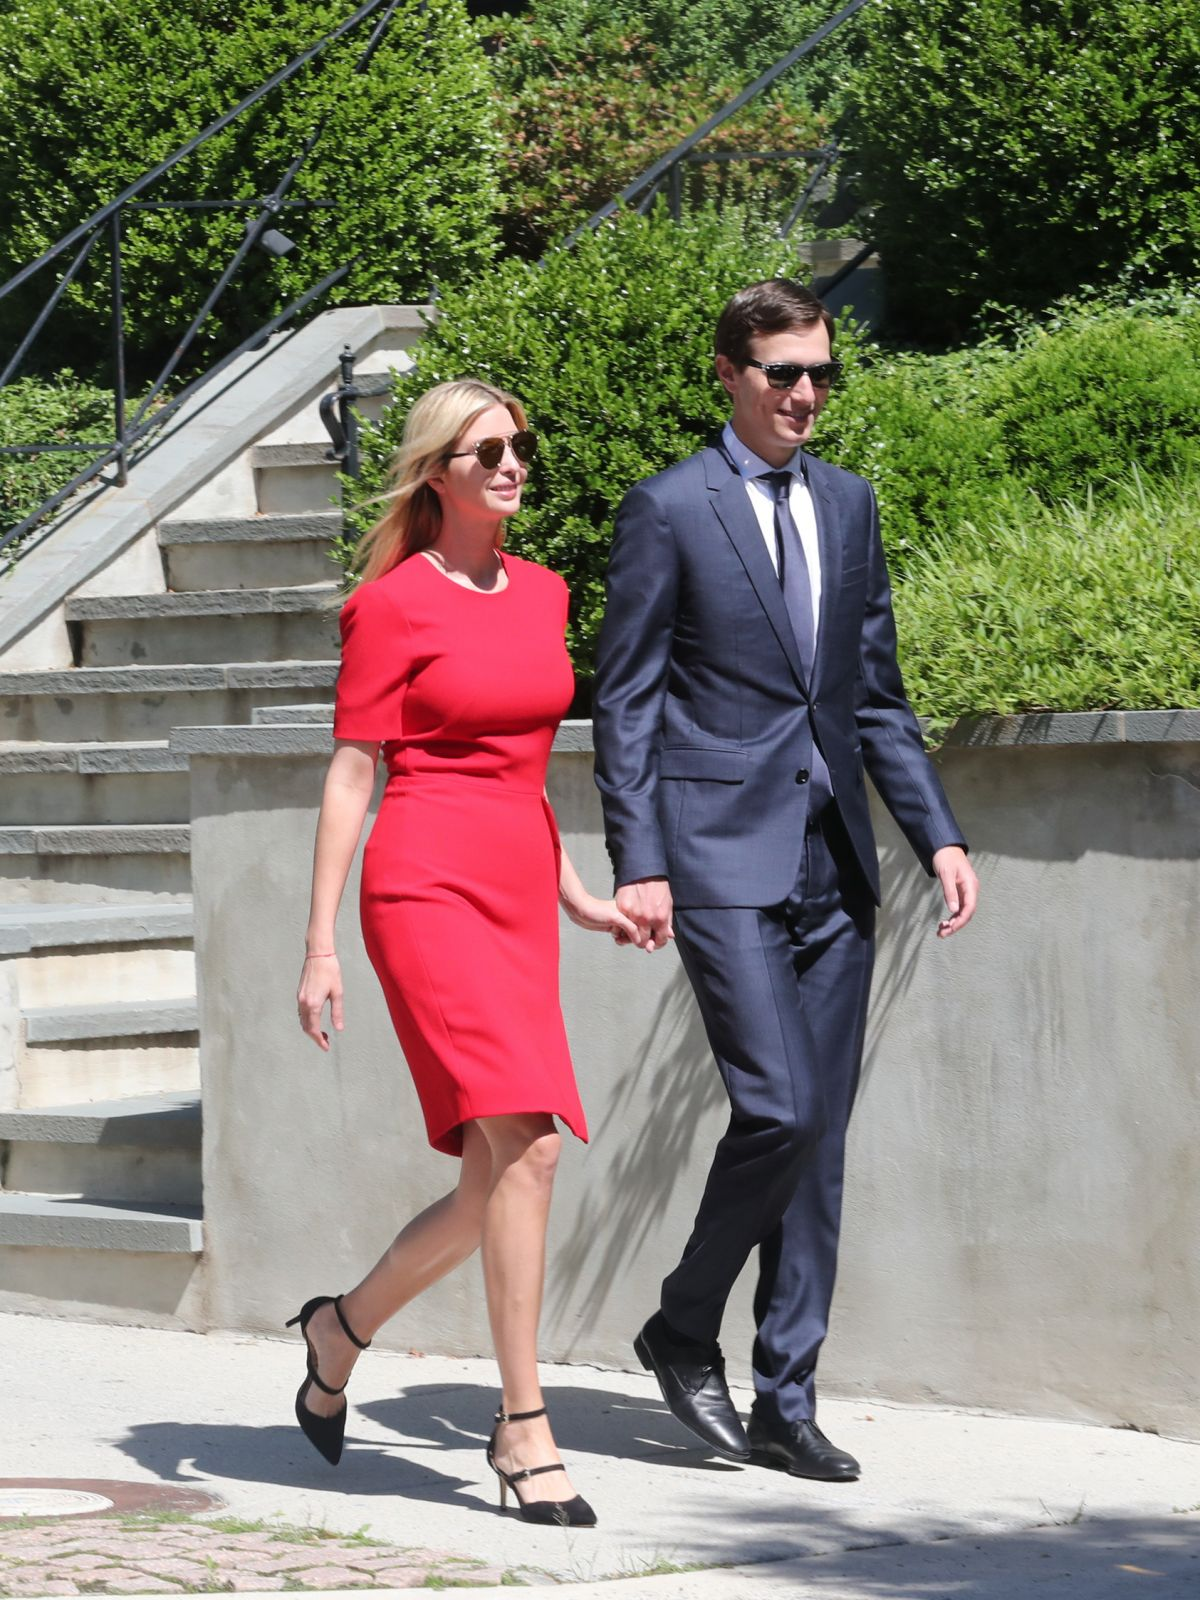 IVANKA TRUMP and Jared Kushner Heading to Synagogue to Celebrate Shavuot in Washington 06/01/2017